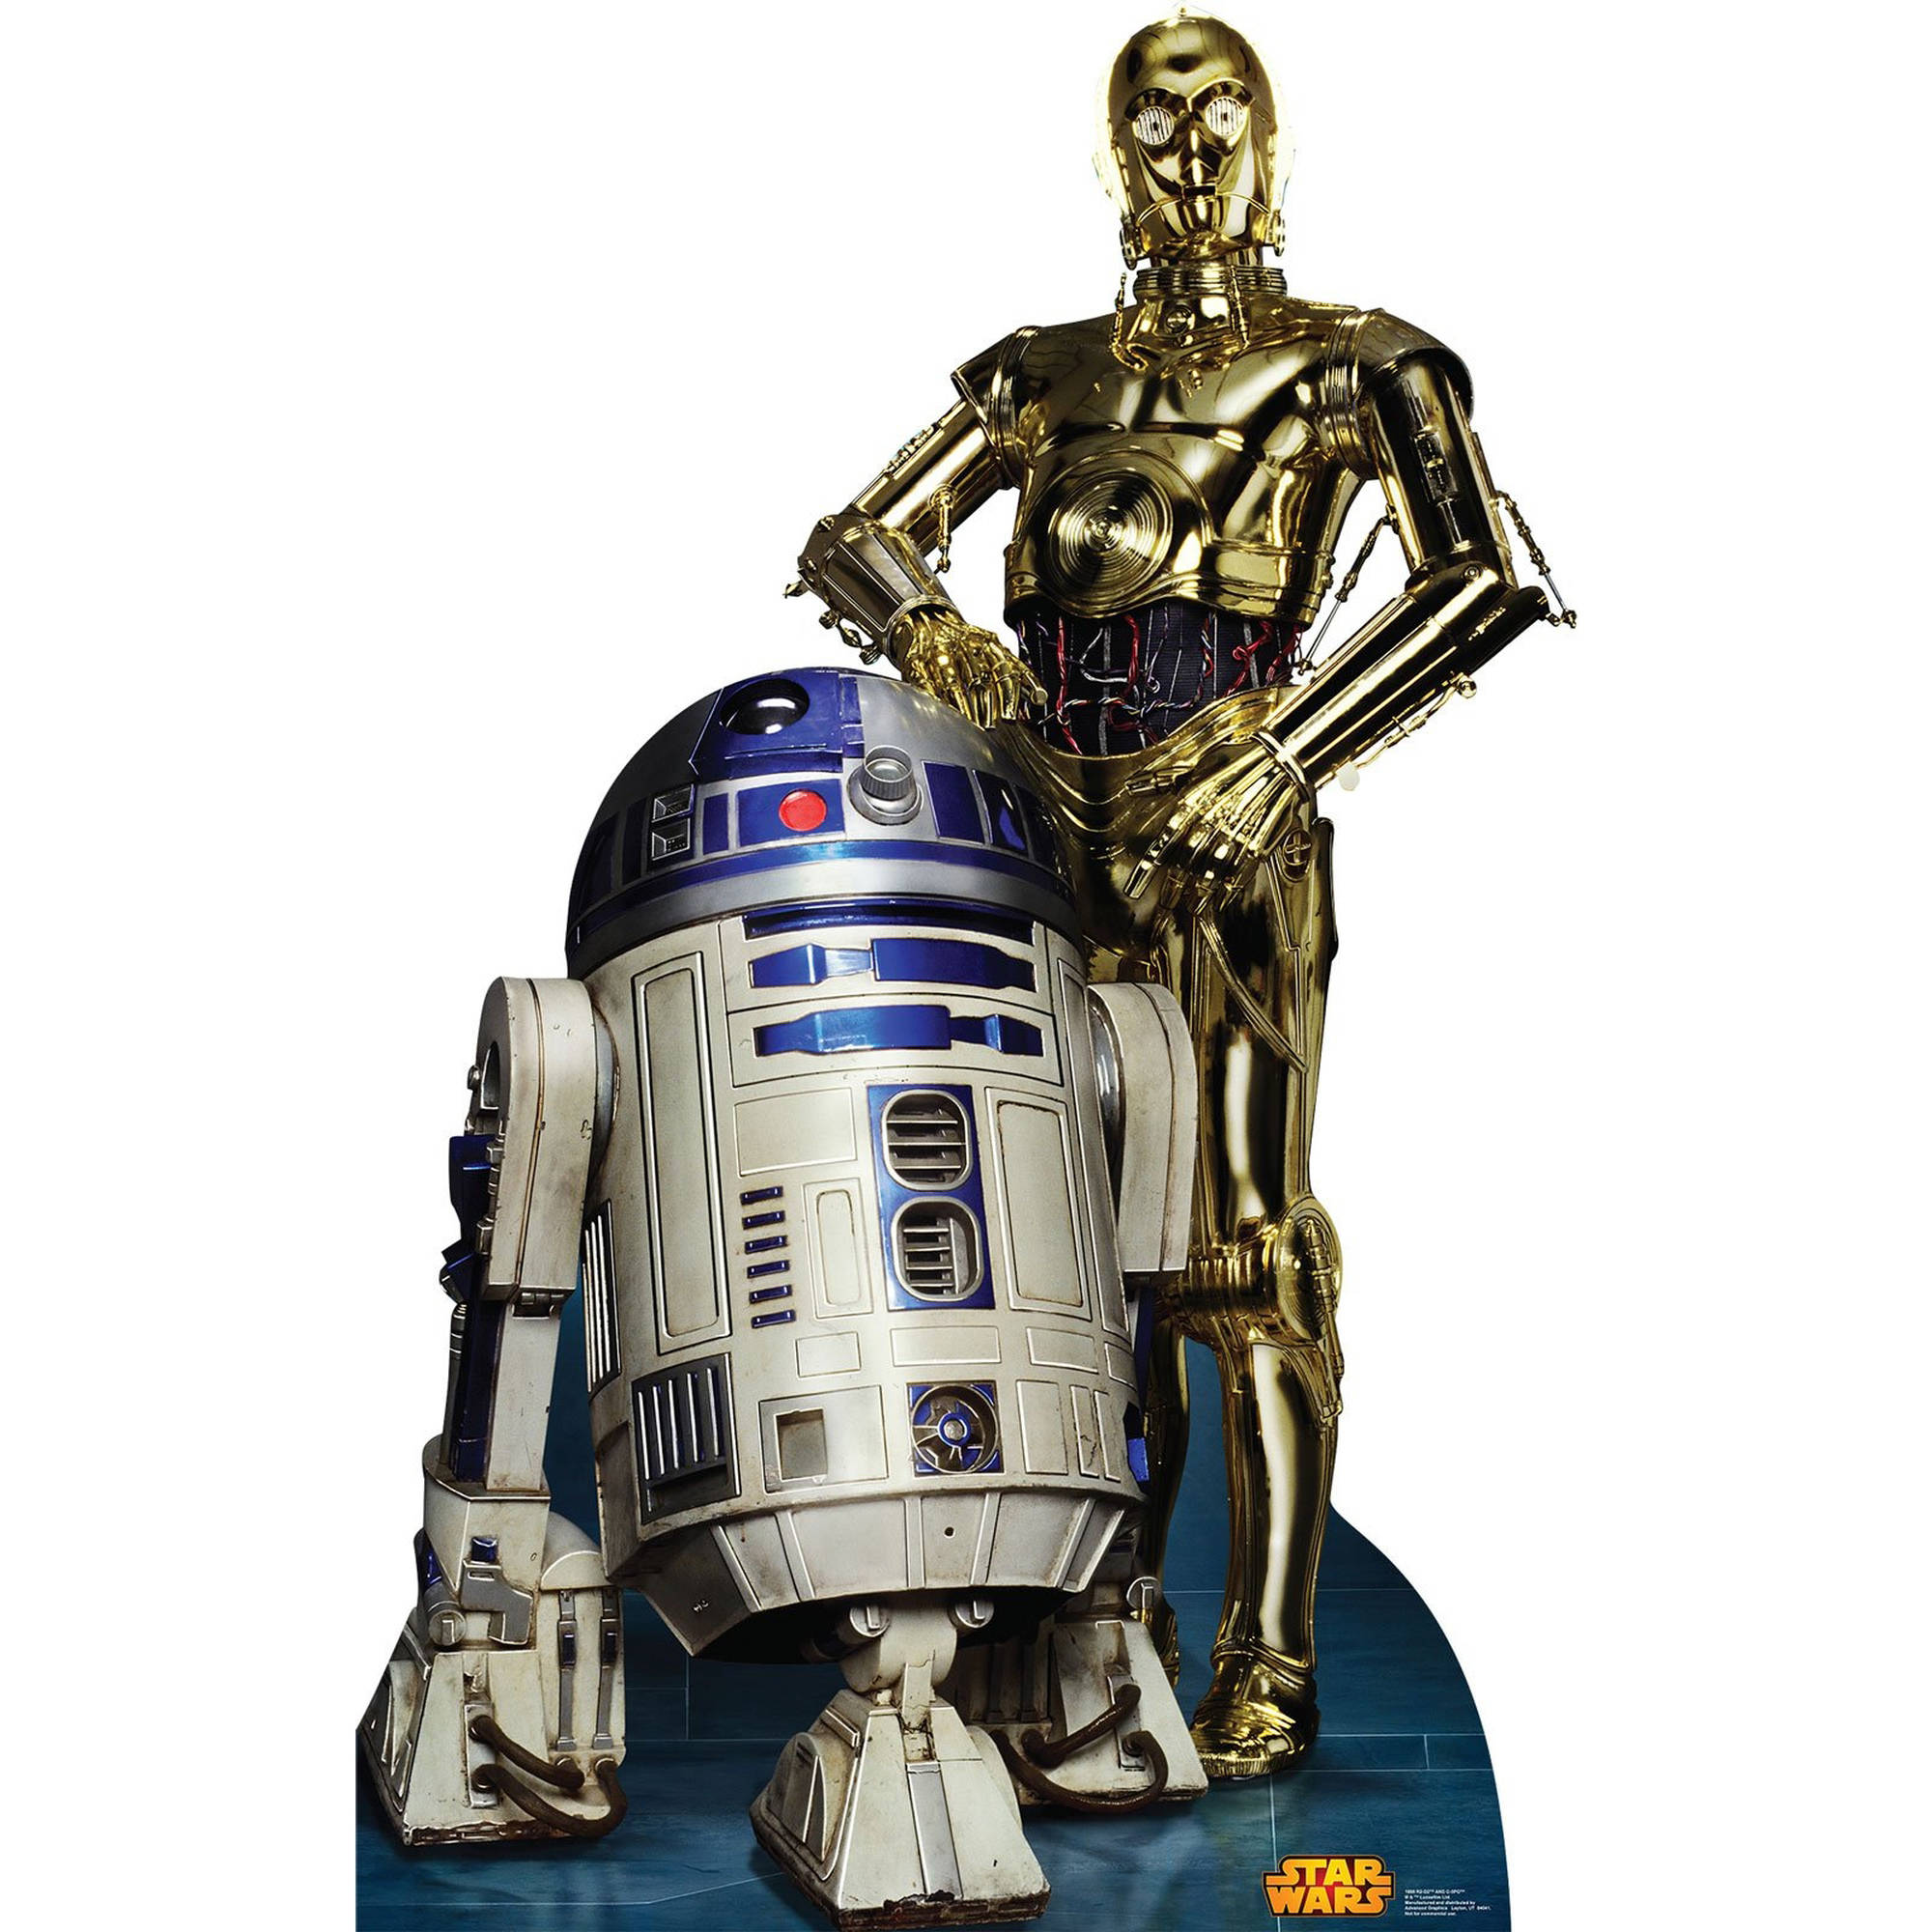 Star Wars R2D2 and C3PO Standup, 6' Tall